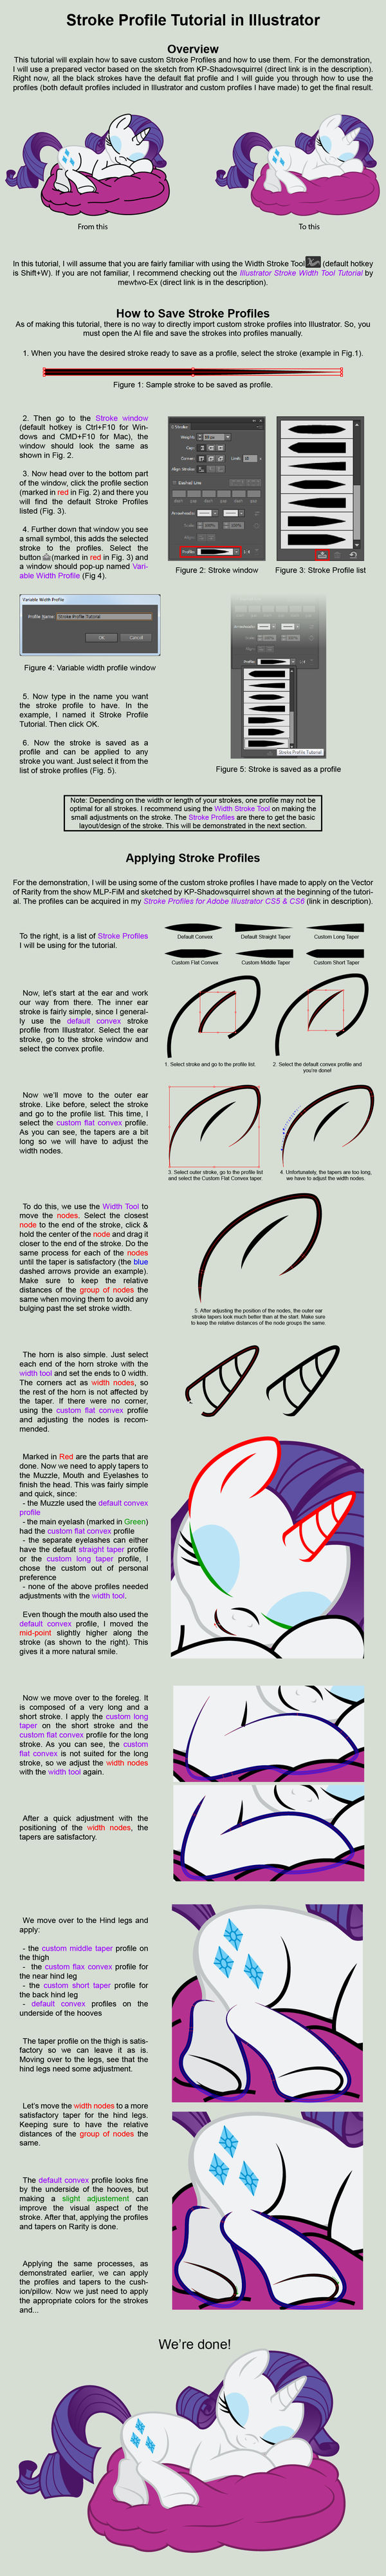 Stroke Profile Tutorial for Illustrator CS5 and Up by Yanoda